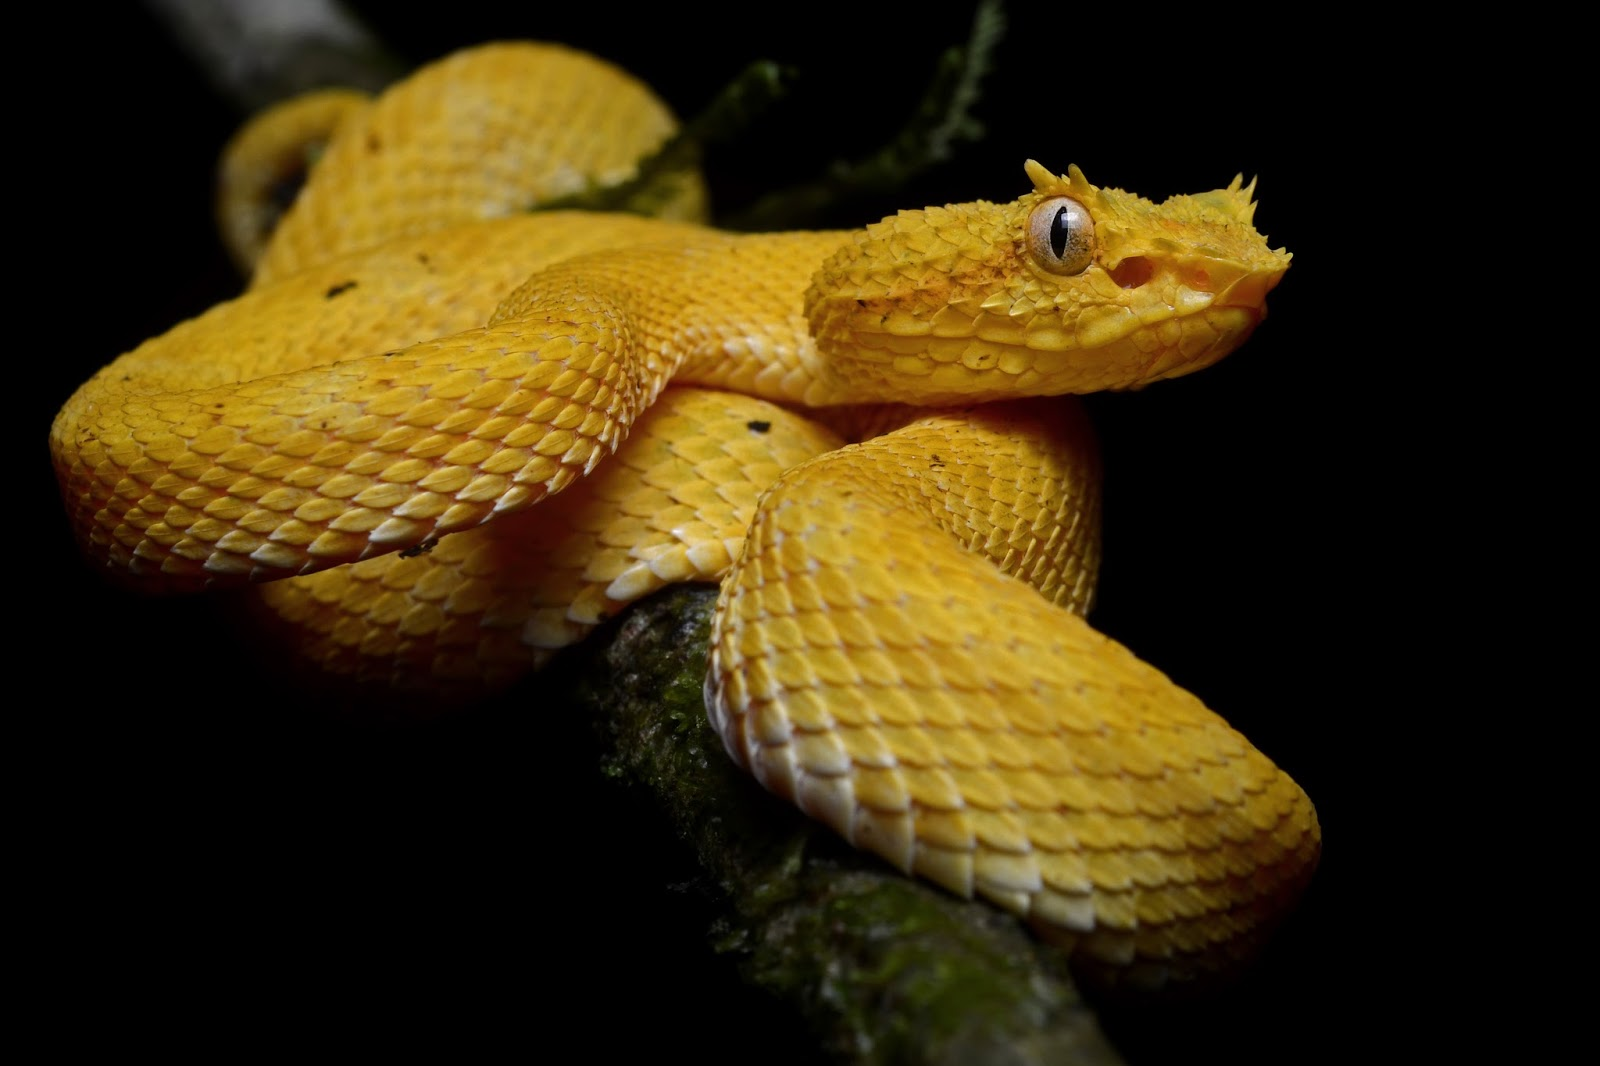 Reptiles: Bothriechis schlegelii (La Selva Biological Station)